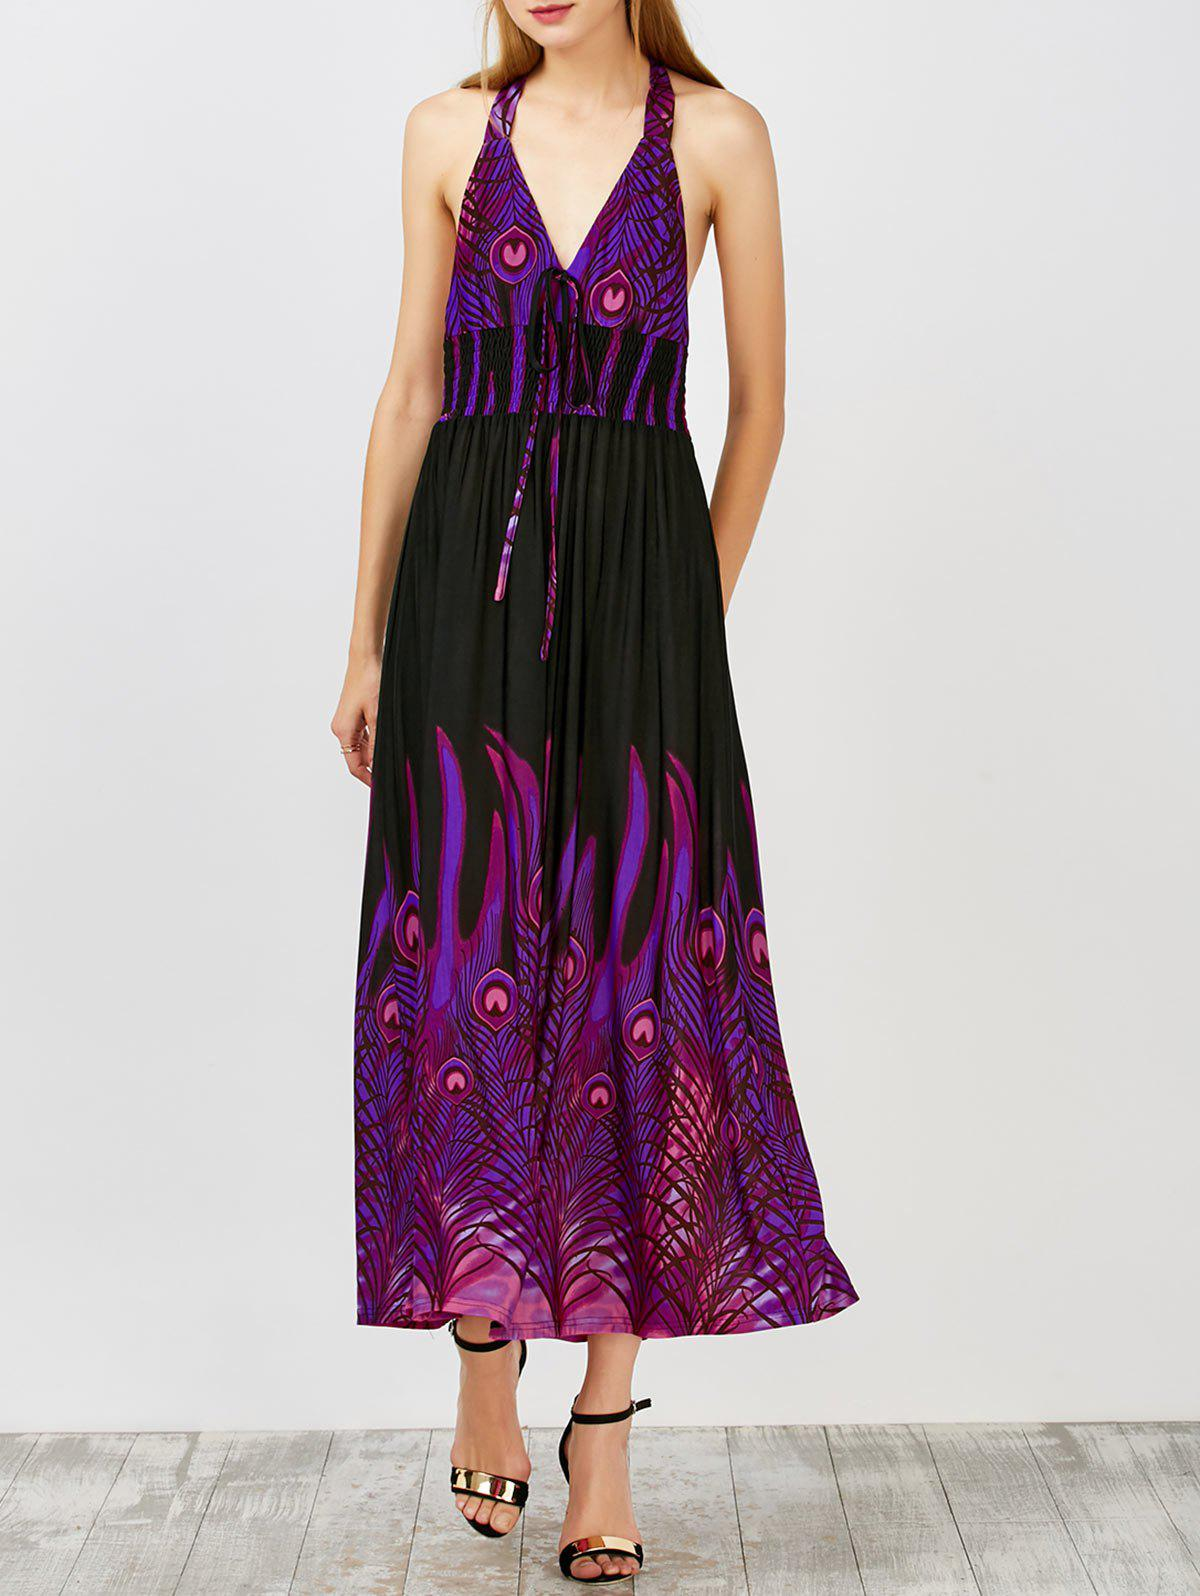 Peacock Printed Halter Open Back Maxi Dress - PURPLE M